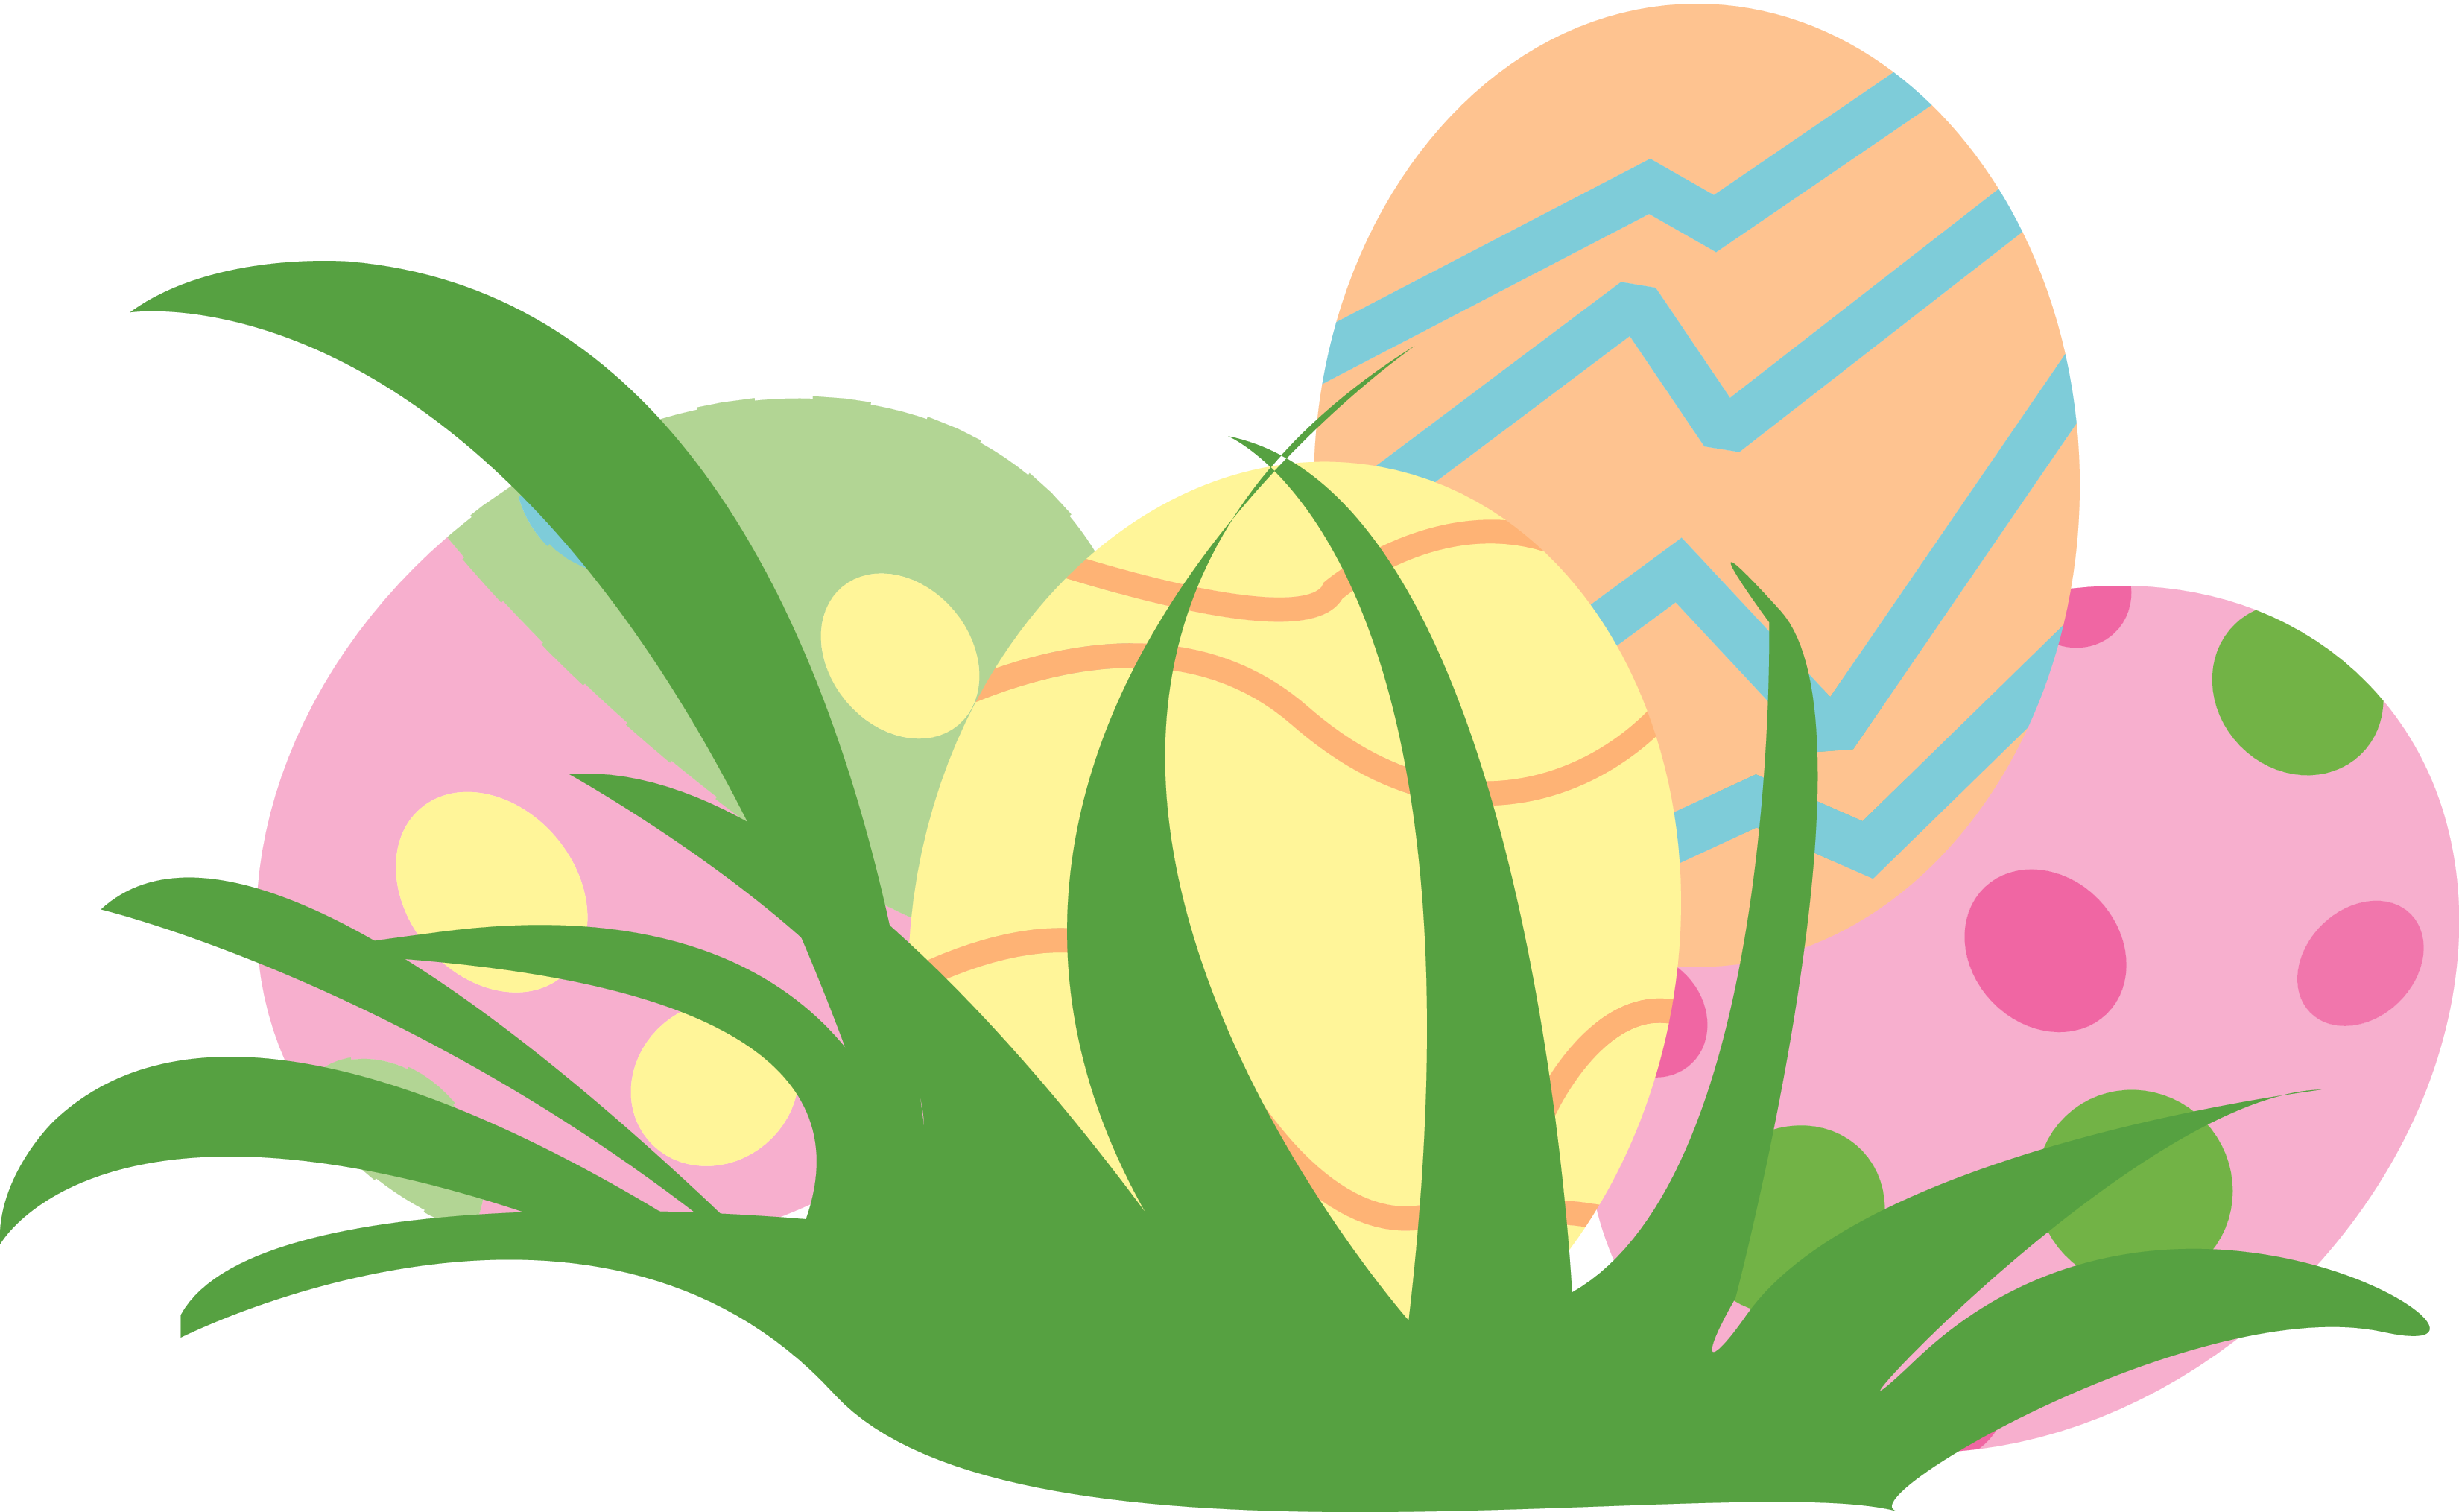 Easter egg hunt clipart christian clipart royalty free download Pin by denise ernst on Easter/Spring | Pinterest | Easter and Cards clipart royalty free download